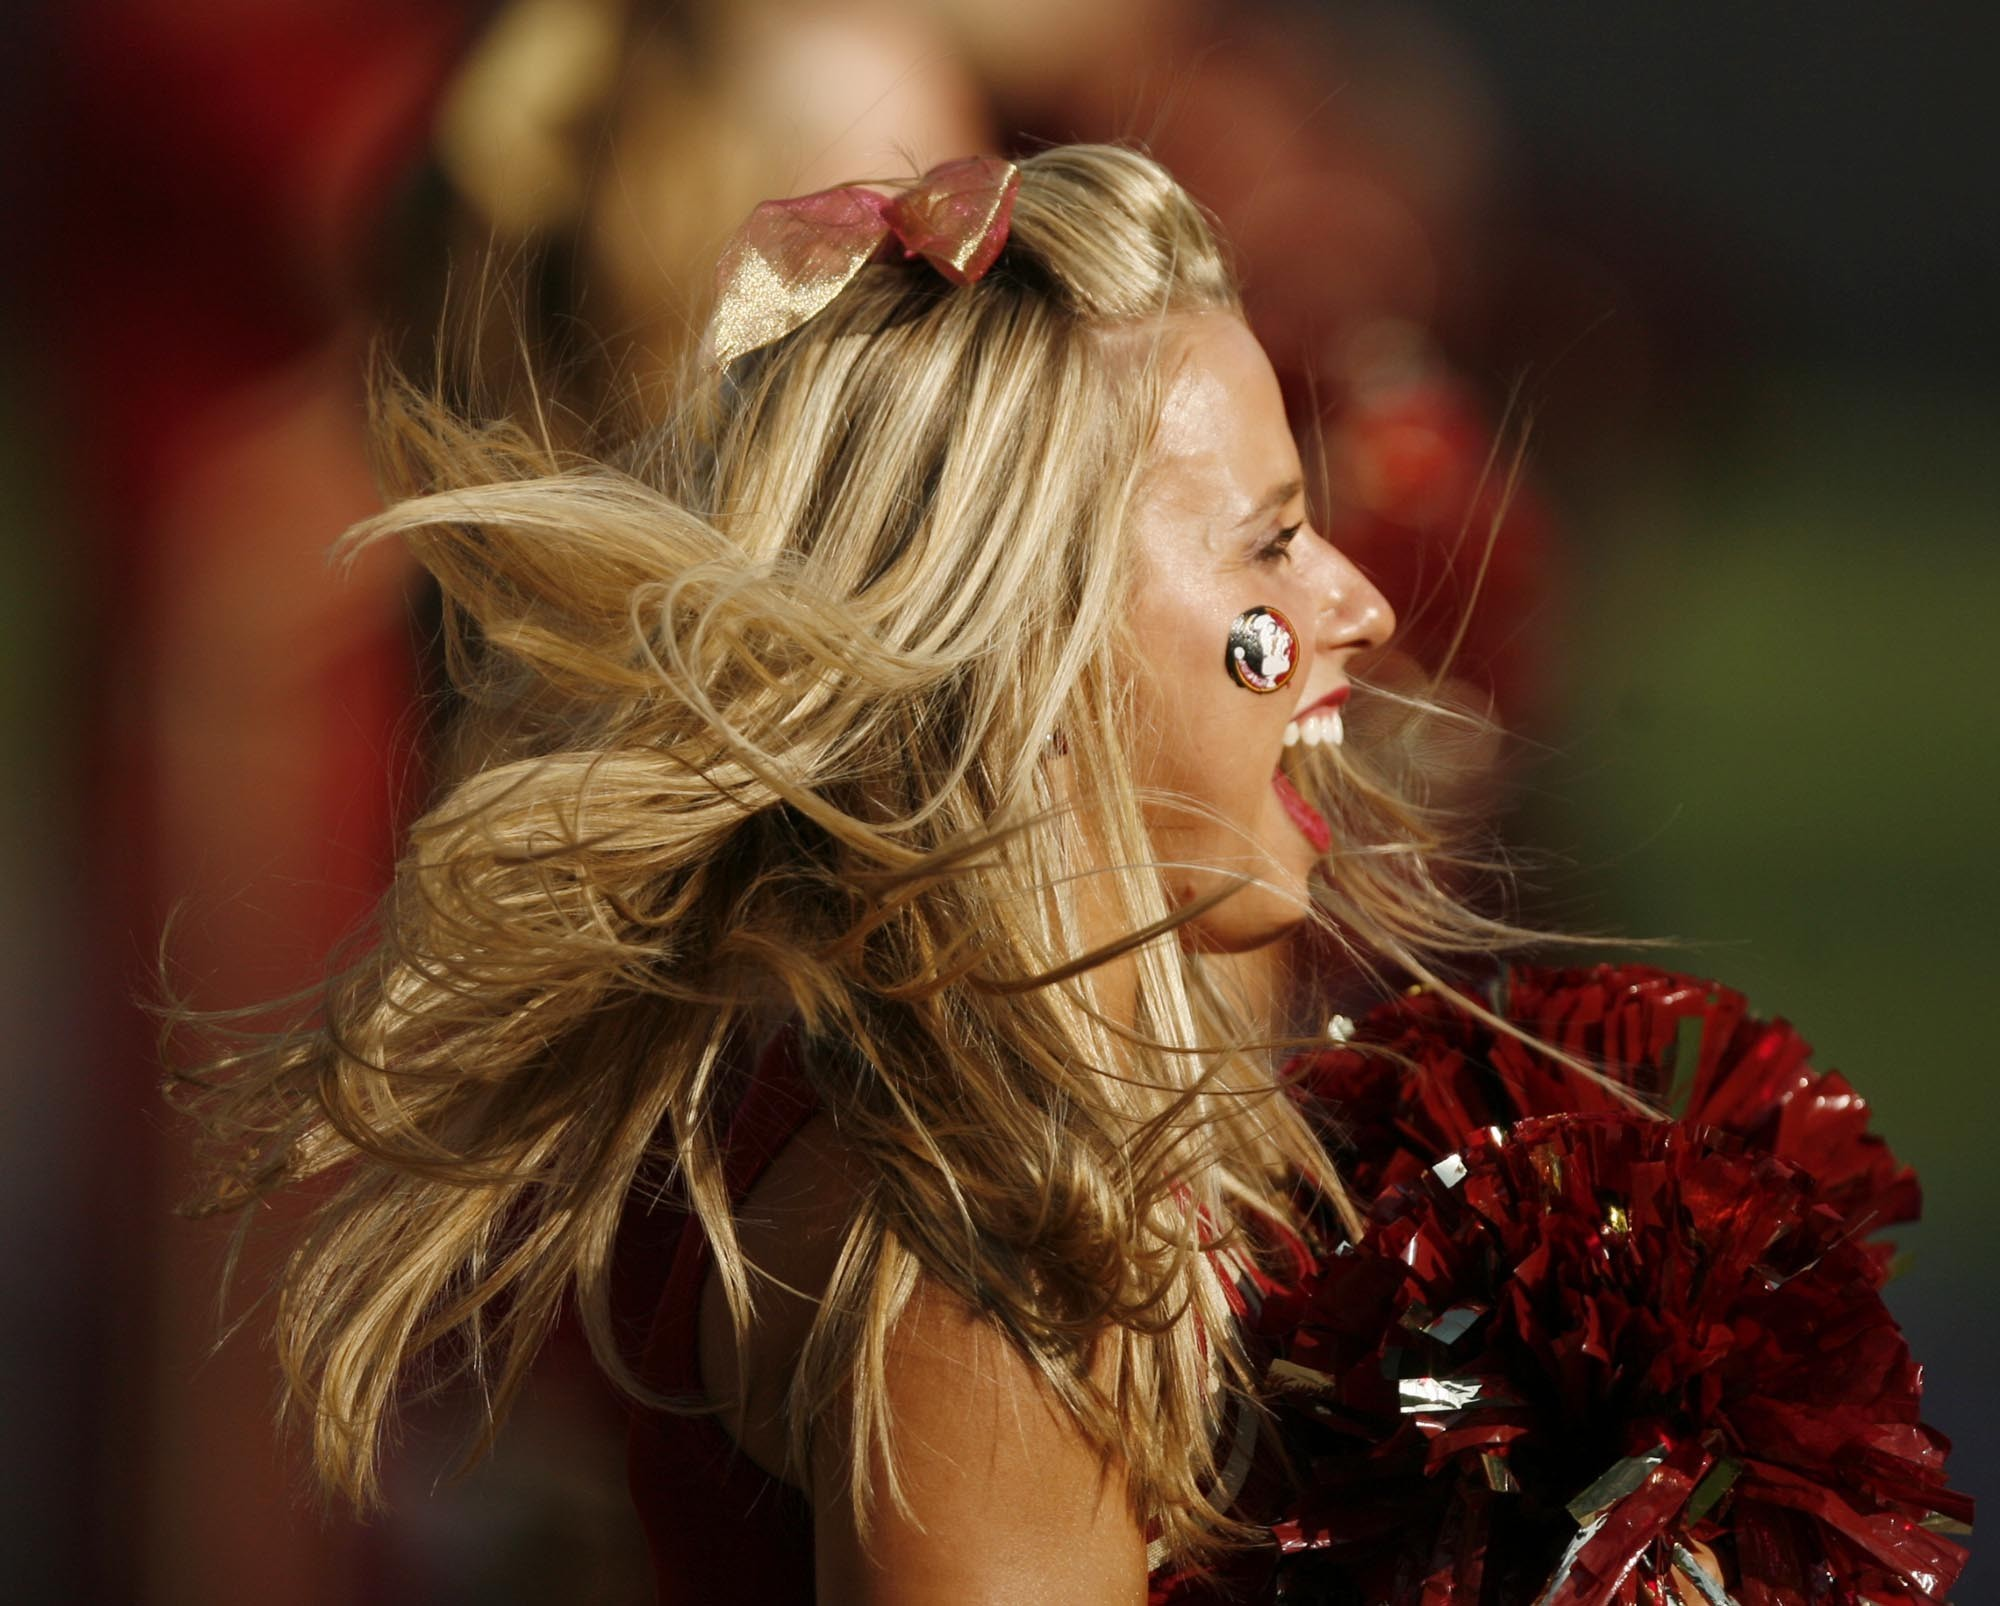 Photos: Florida State football fans and cheerleaders - Florida State vs. Murray State